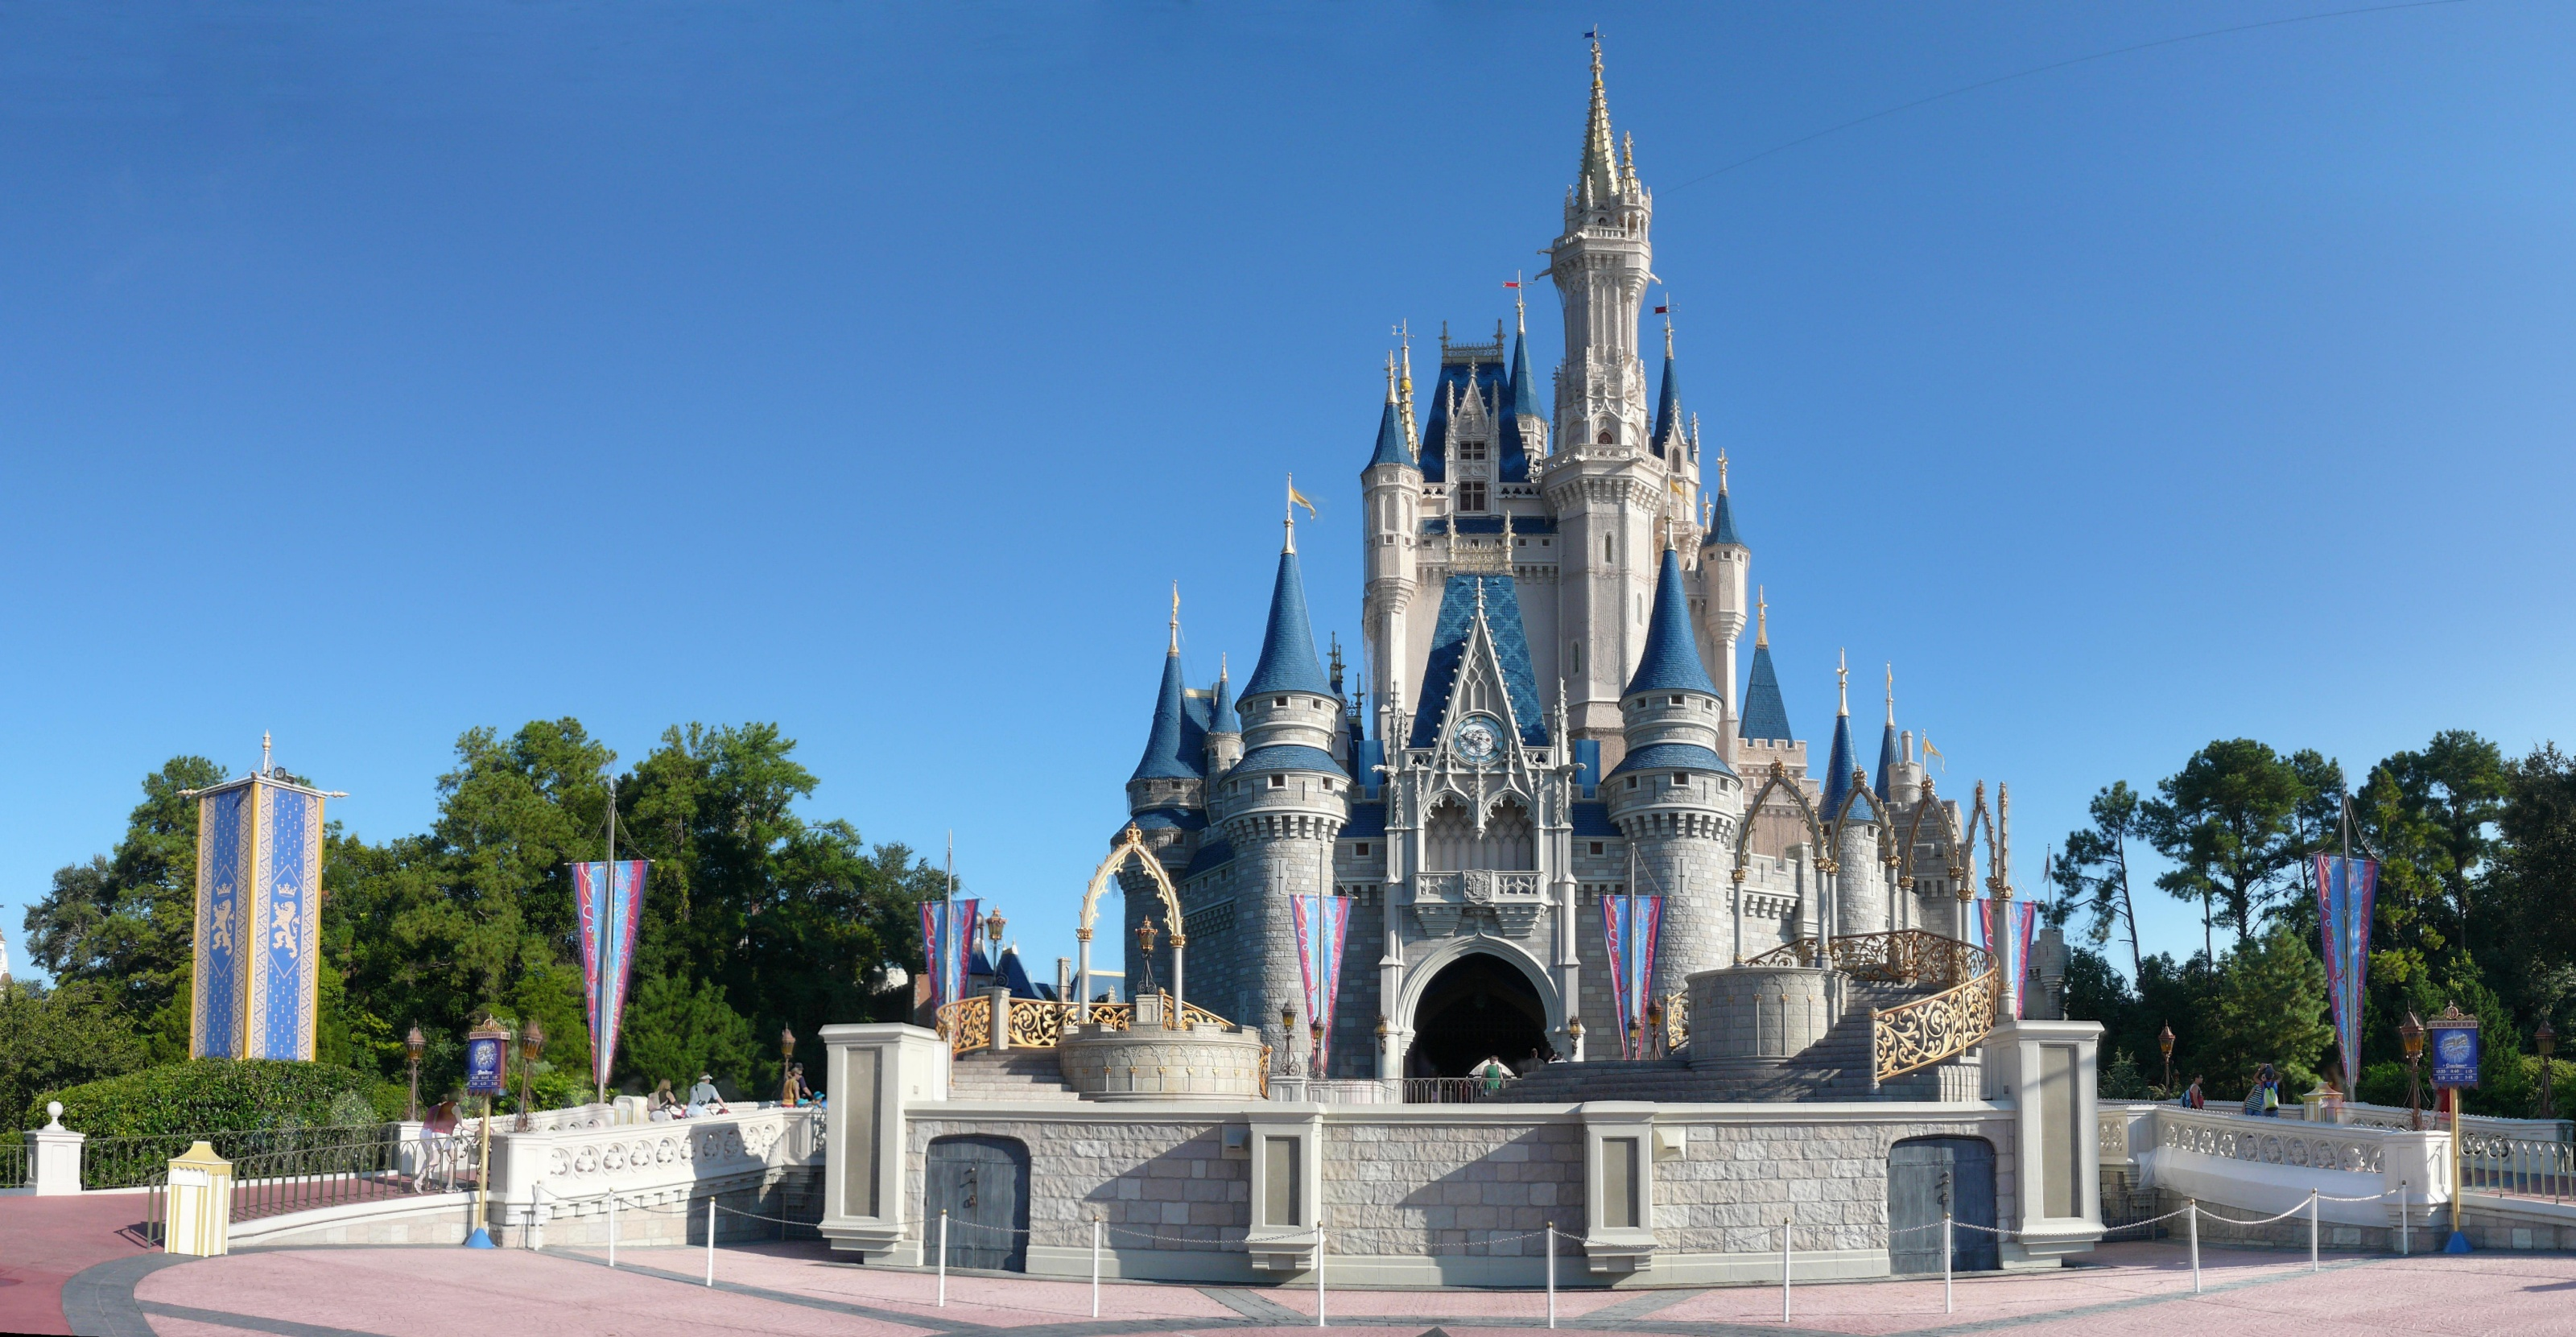 Magic Kingdom's Cinderella Castle in front of a light blue sky